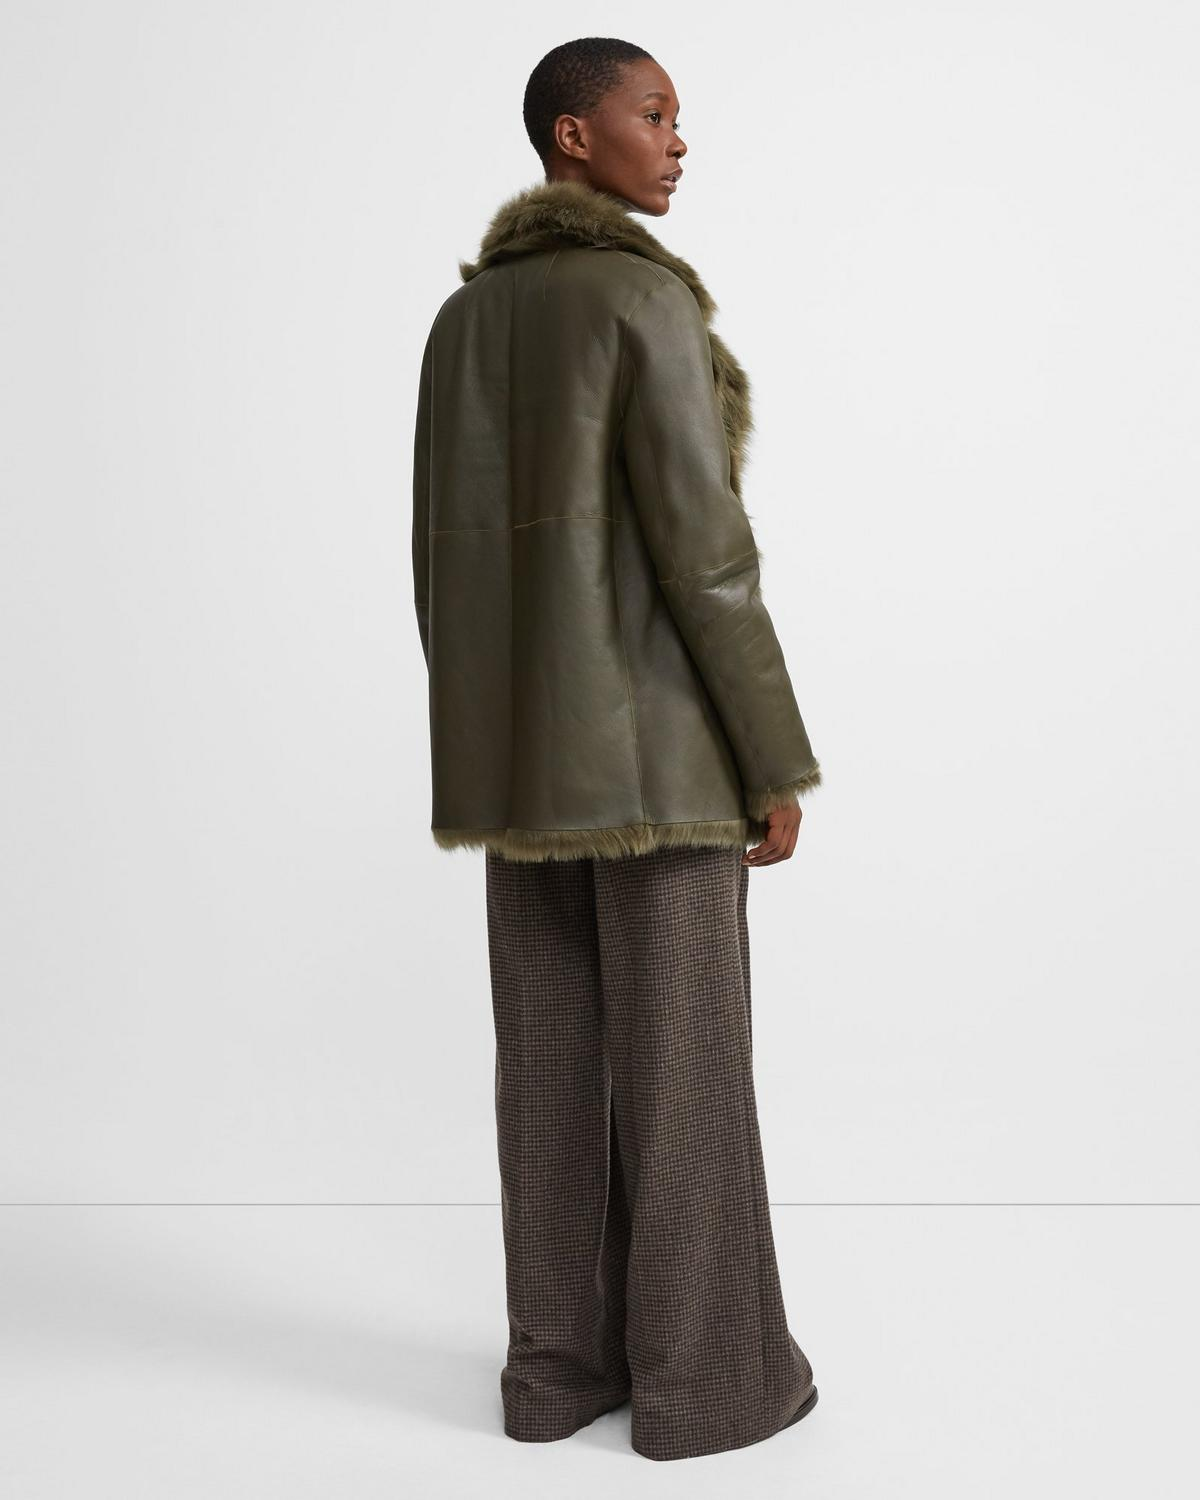 Overlay Reversible Coat in Shearling